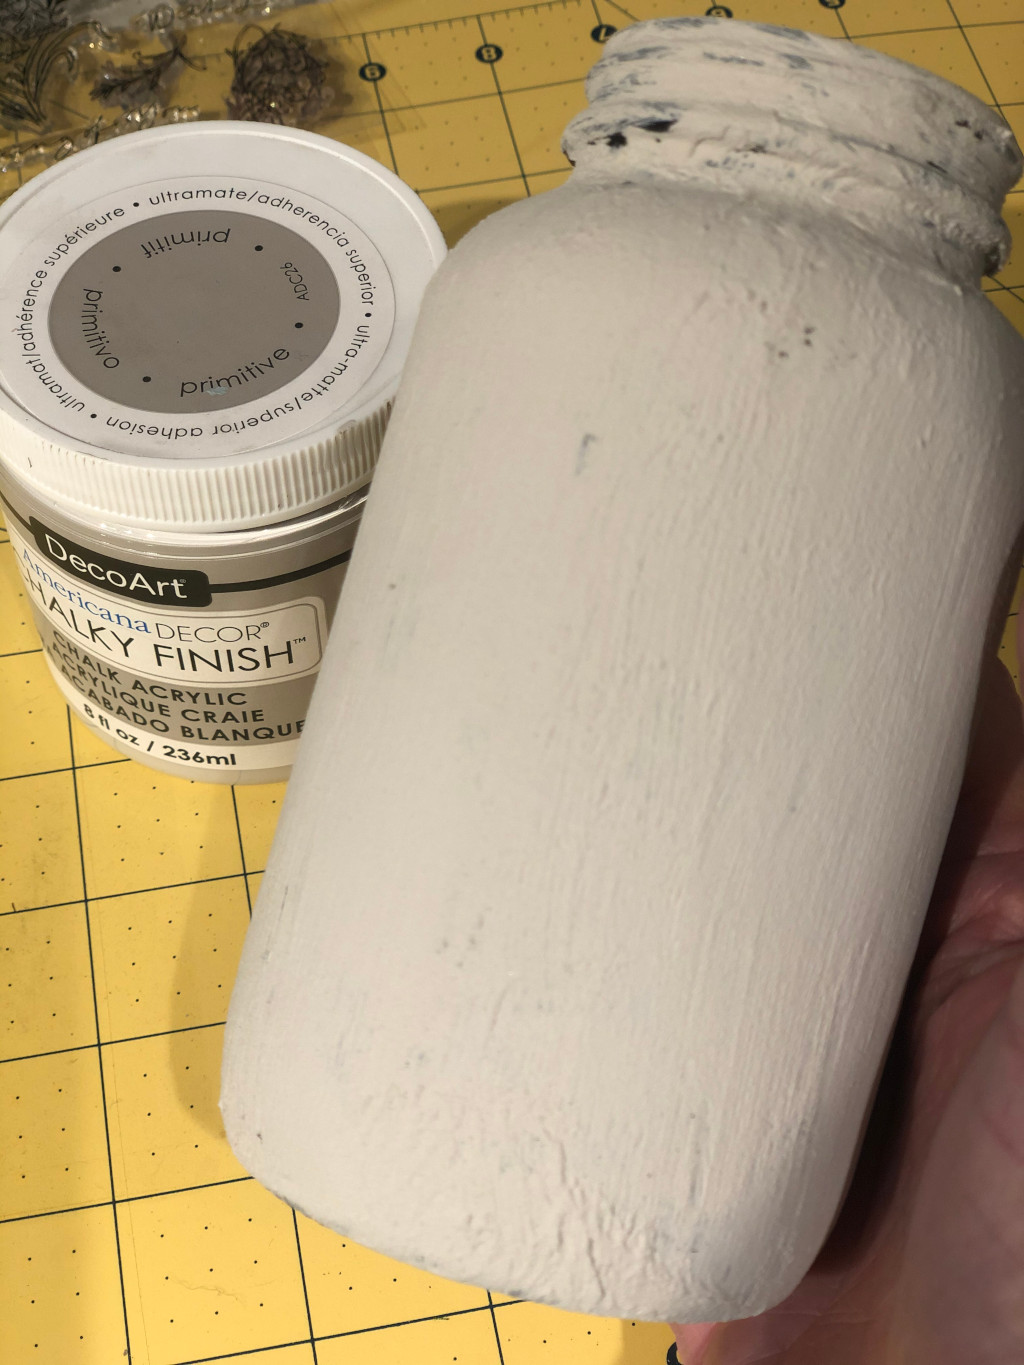 Baking Soda and Chalky Paint Finish